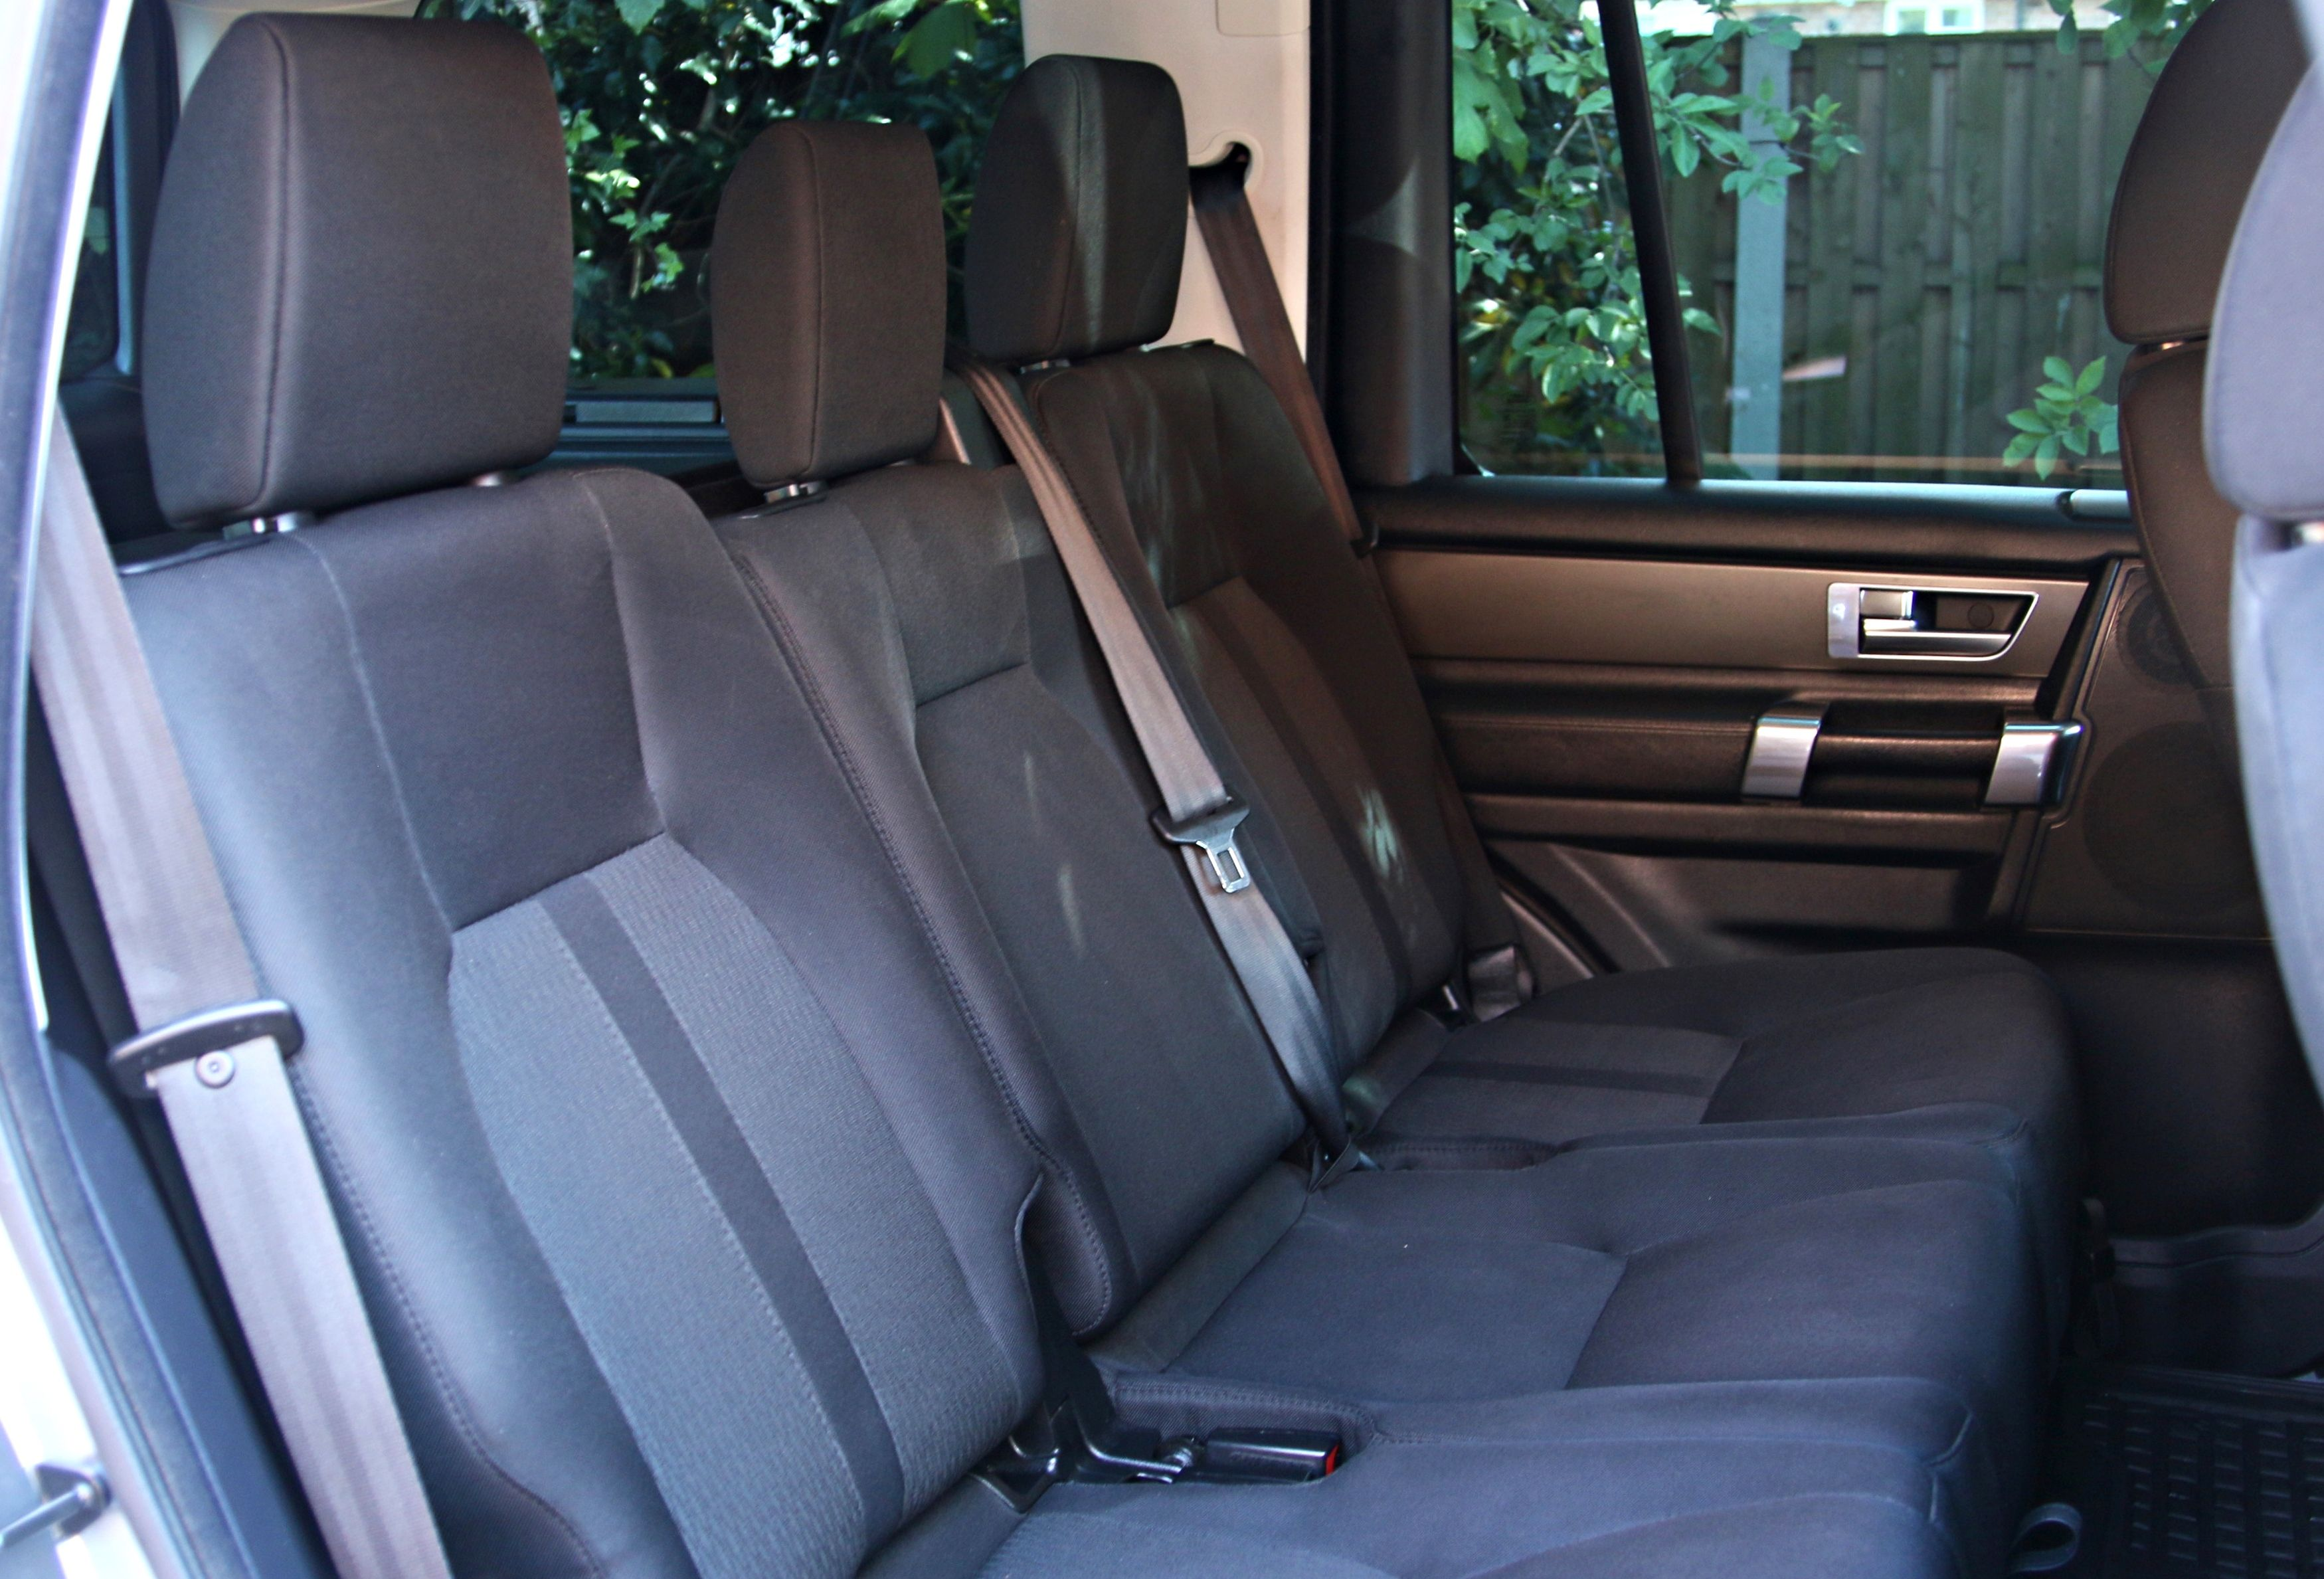 Rear Seat Conversions for Used Land Rover Commercial Discovery 4 using Genuine Land Rover Cloth Rear Seats (from the 2009-2015 model) - £1,650+VAT